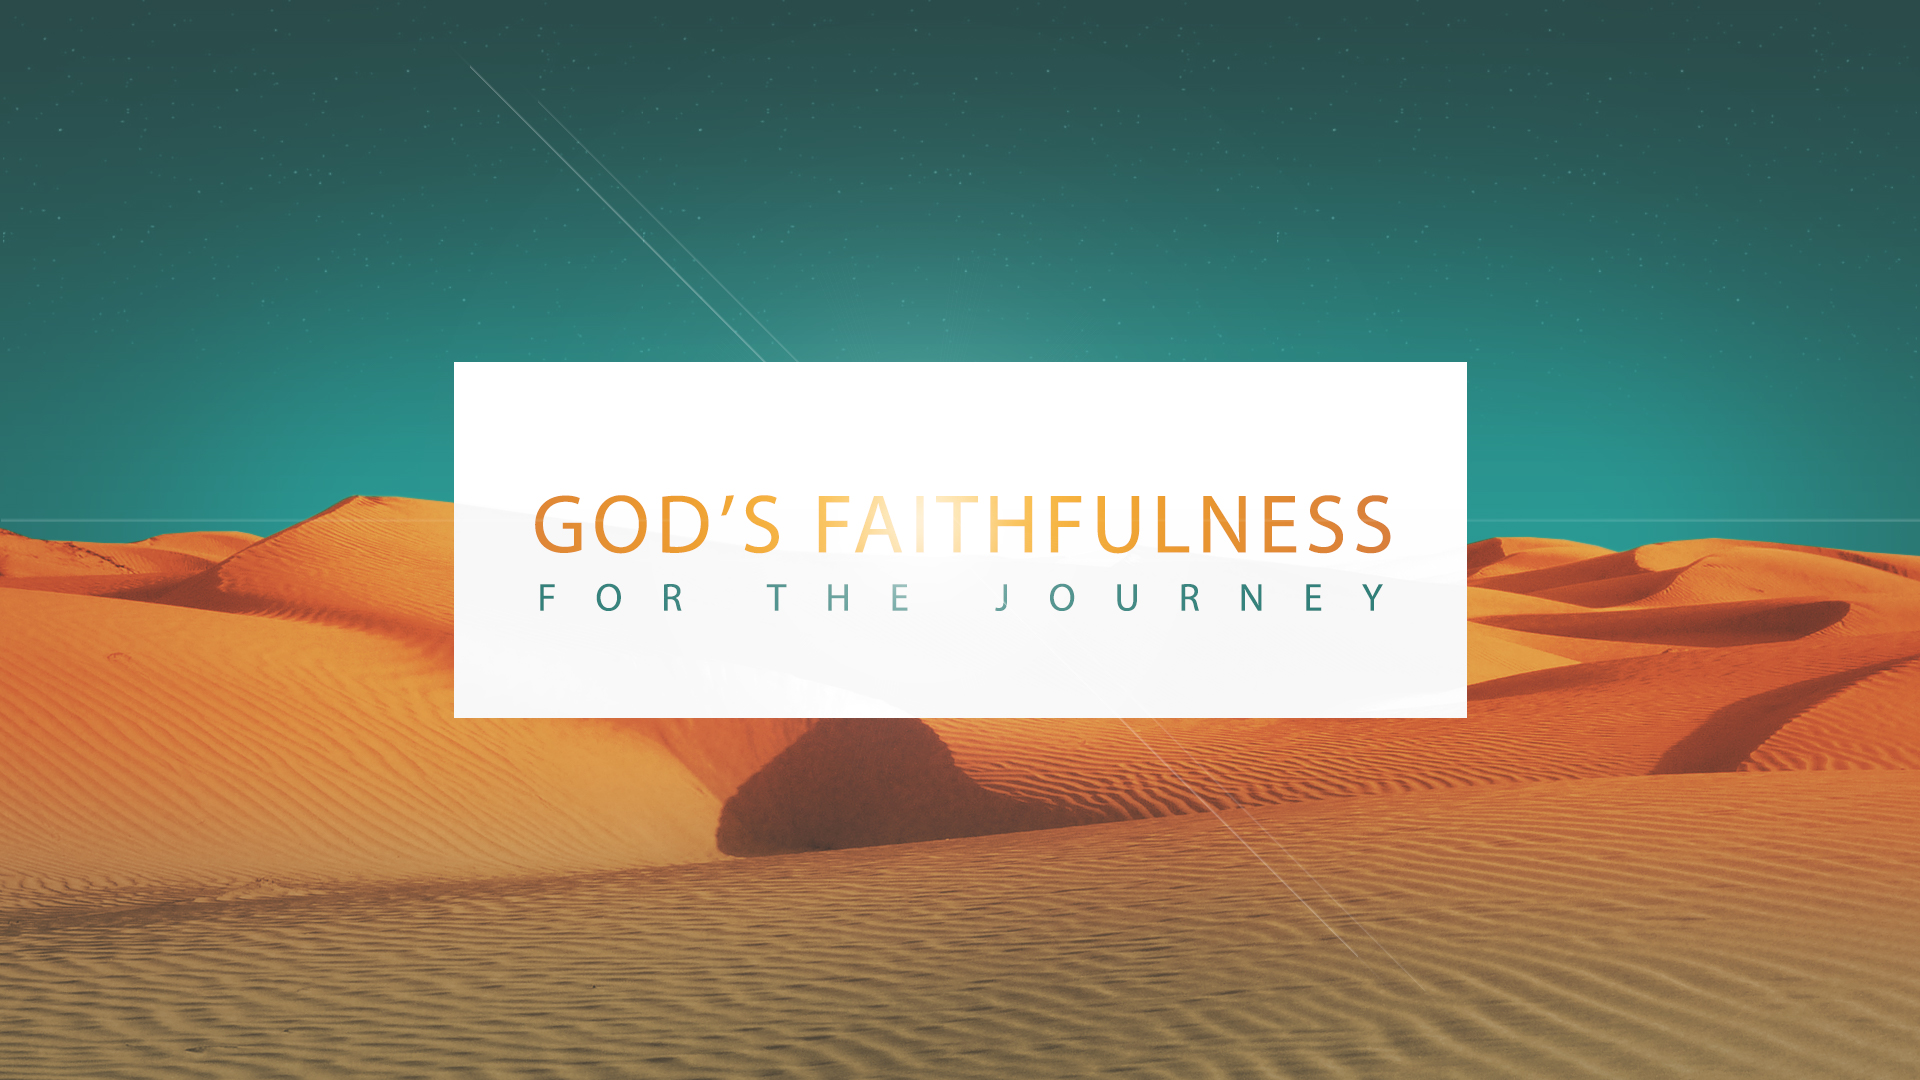 God's Faithfulness for the Journey